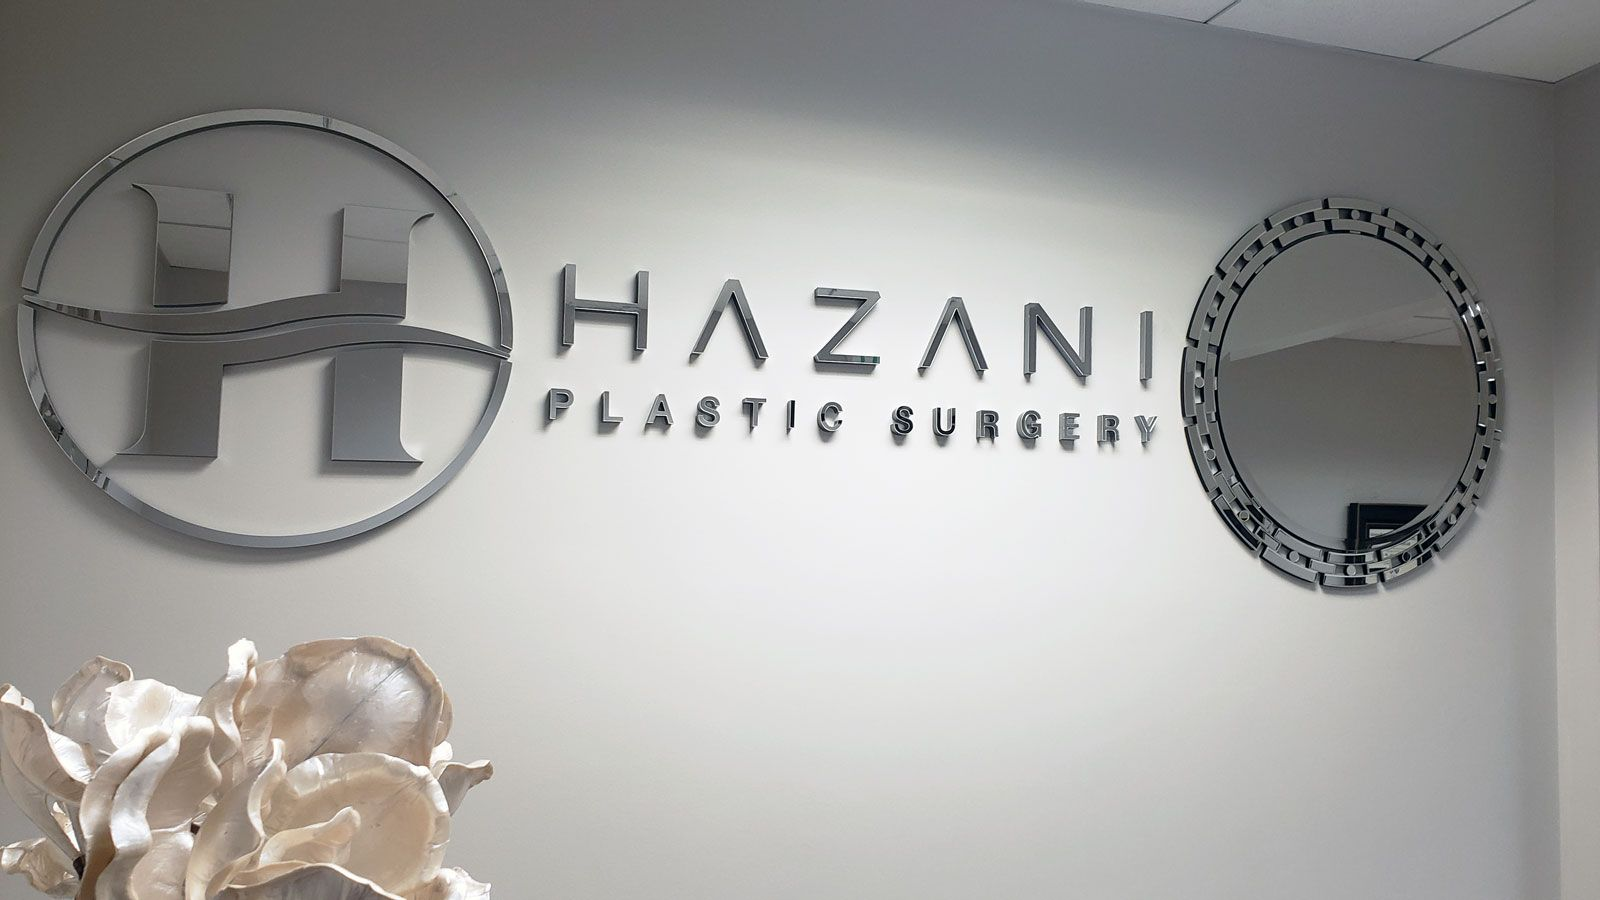 Hazani Plastic Surgery 3d acrylic letters and logo sign with a mirroring effect